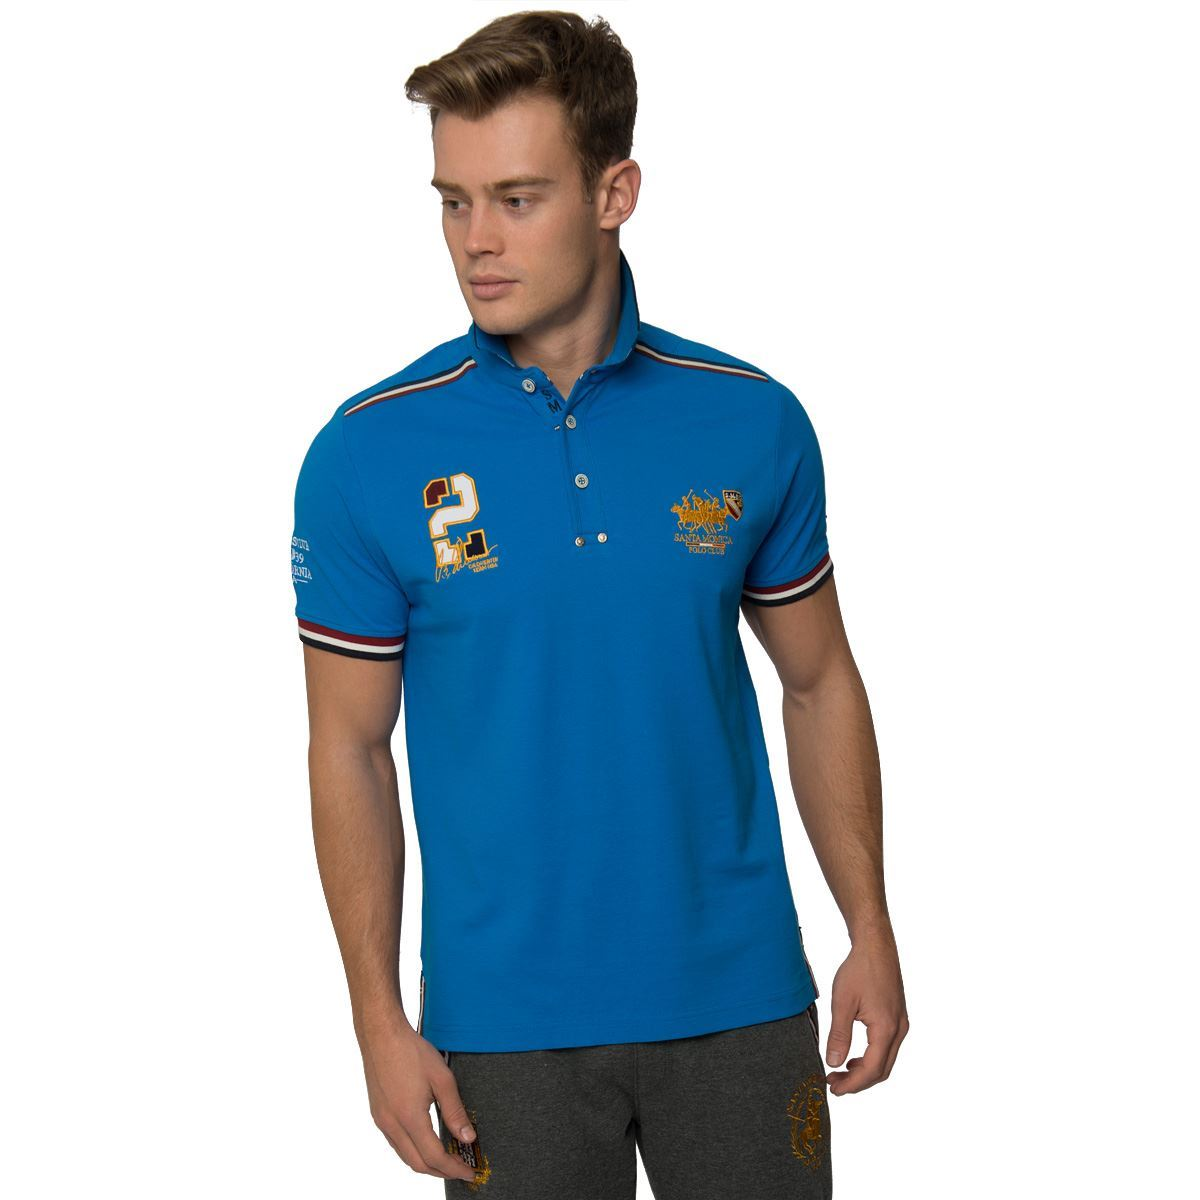 New Mens Casual Polo Shirt Button Up Short Sleeve Top